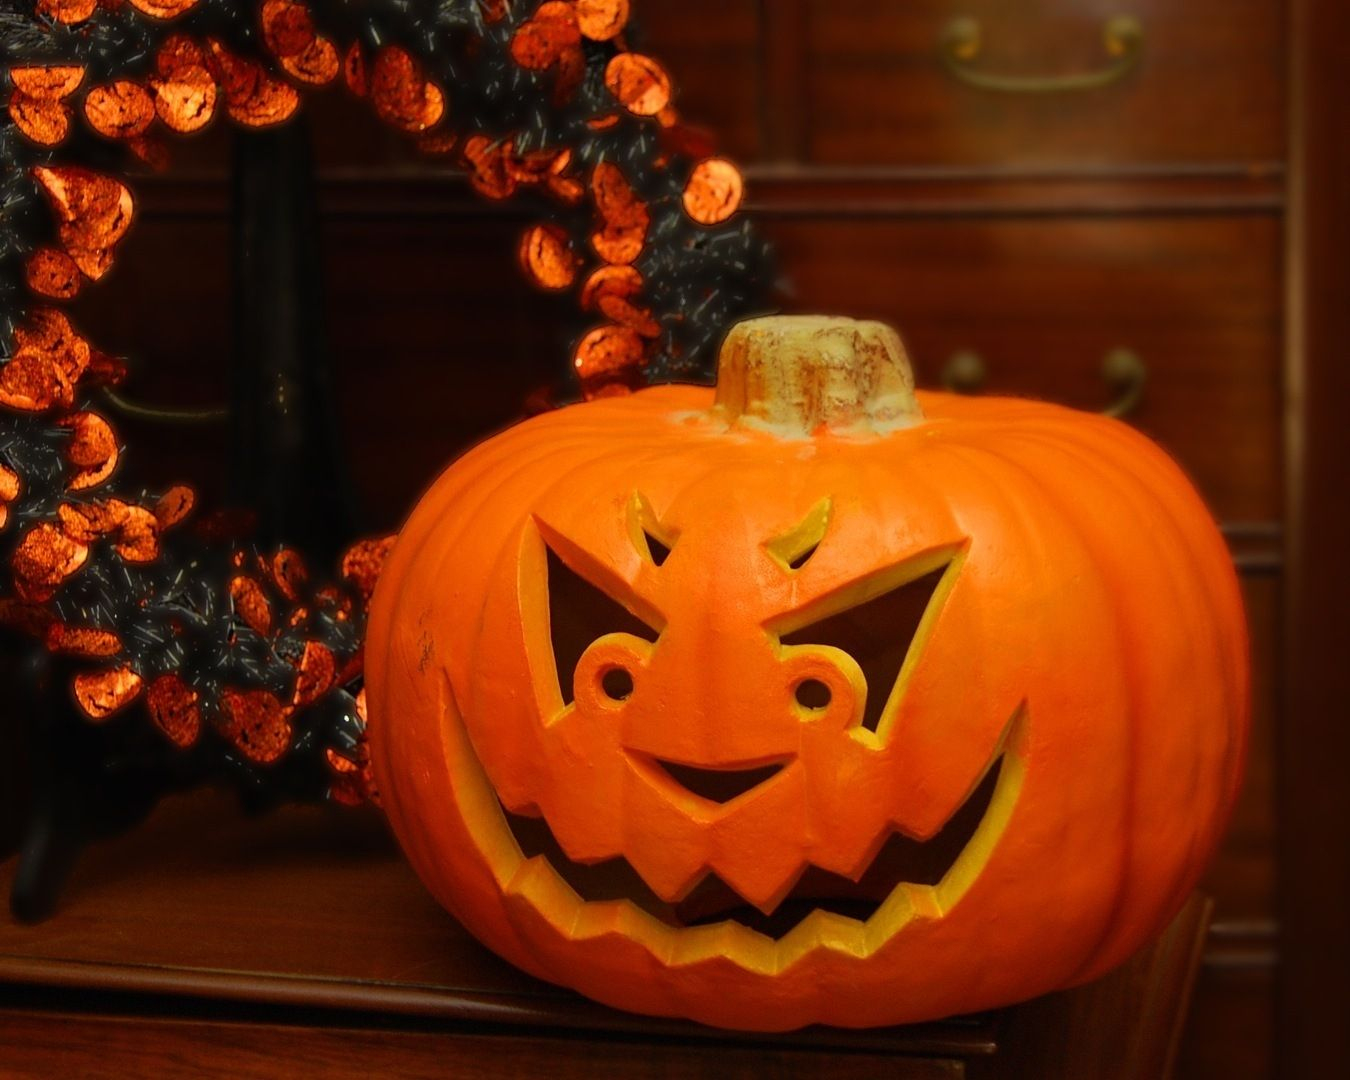 Cool Easy Pumpkin Carving Ideas 2016, Scary Printable Pumpkin - Scary Pumpkin Stencils Free Printable